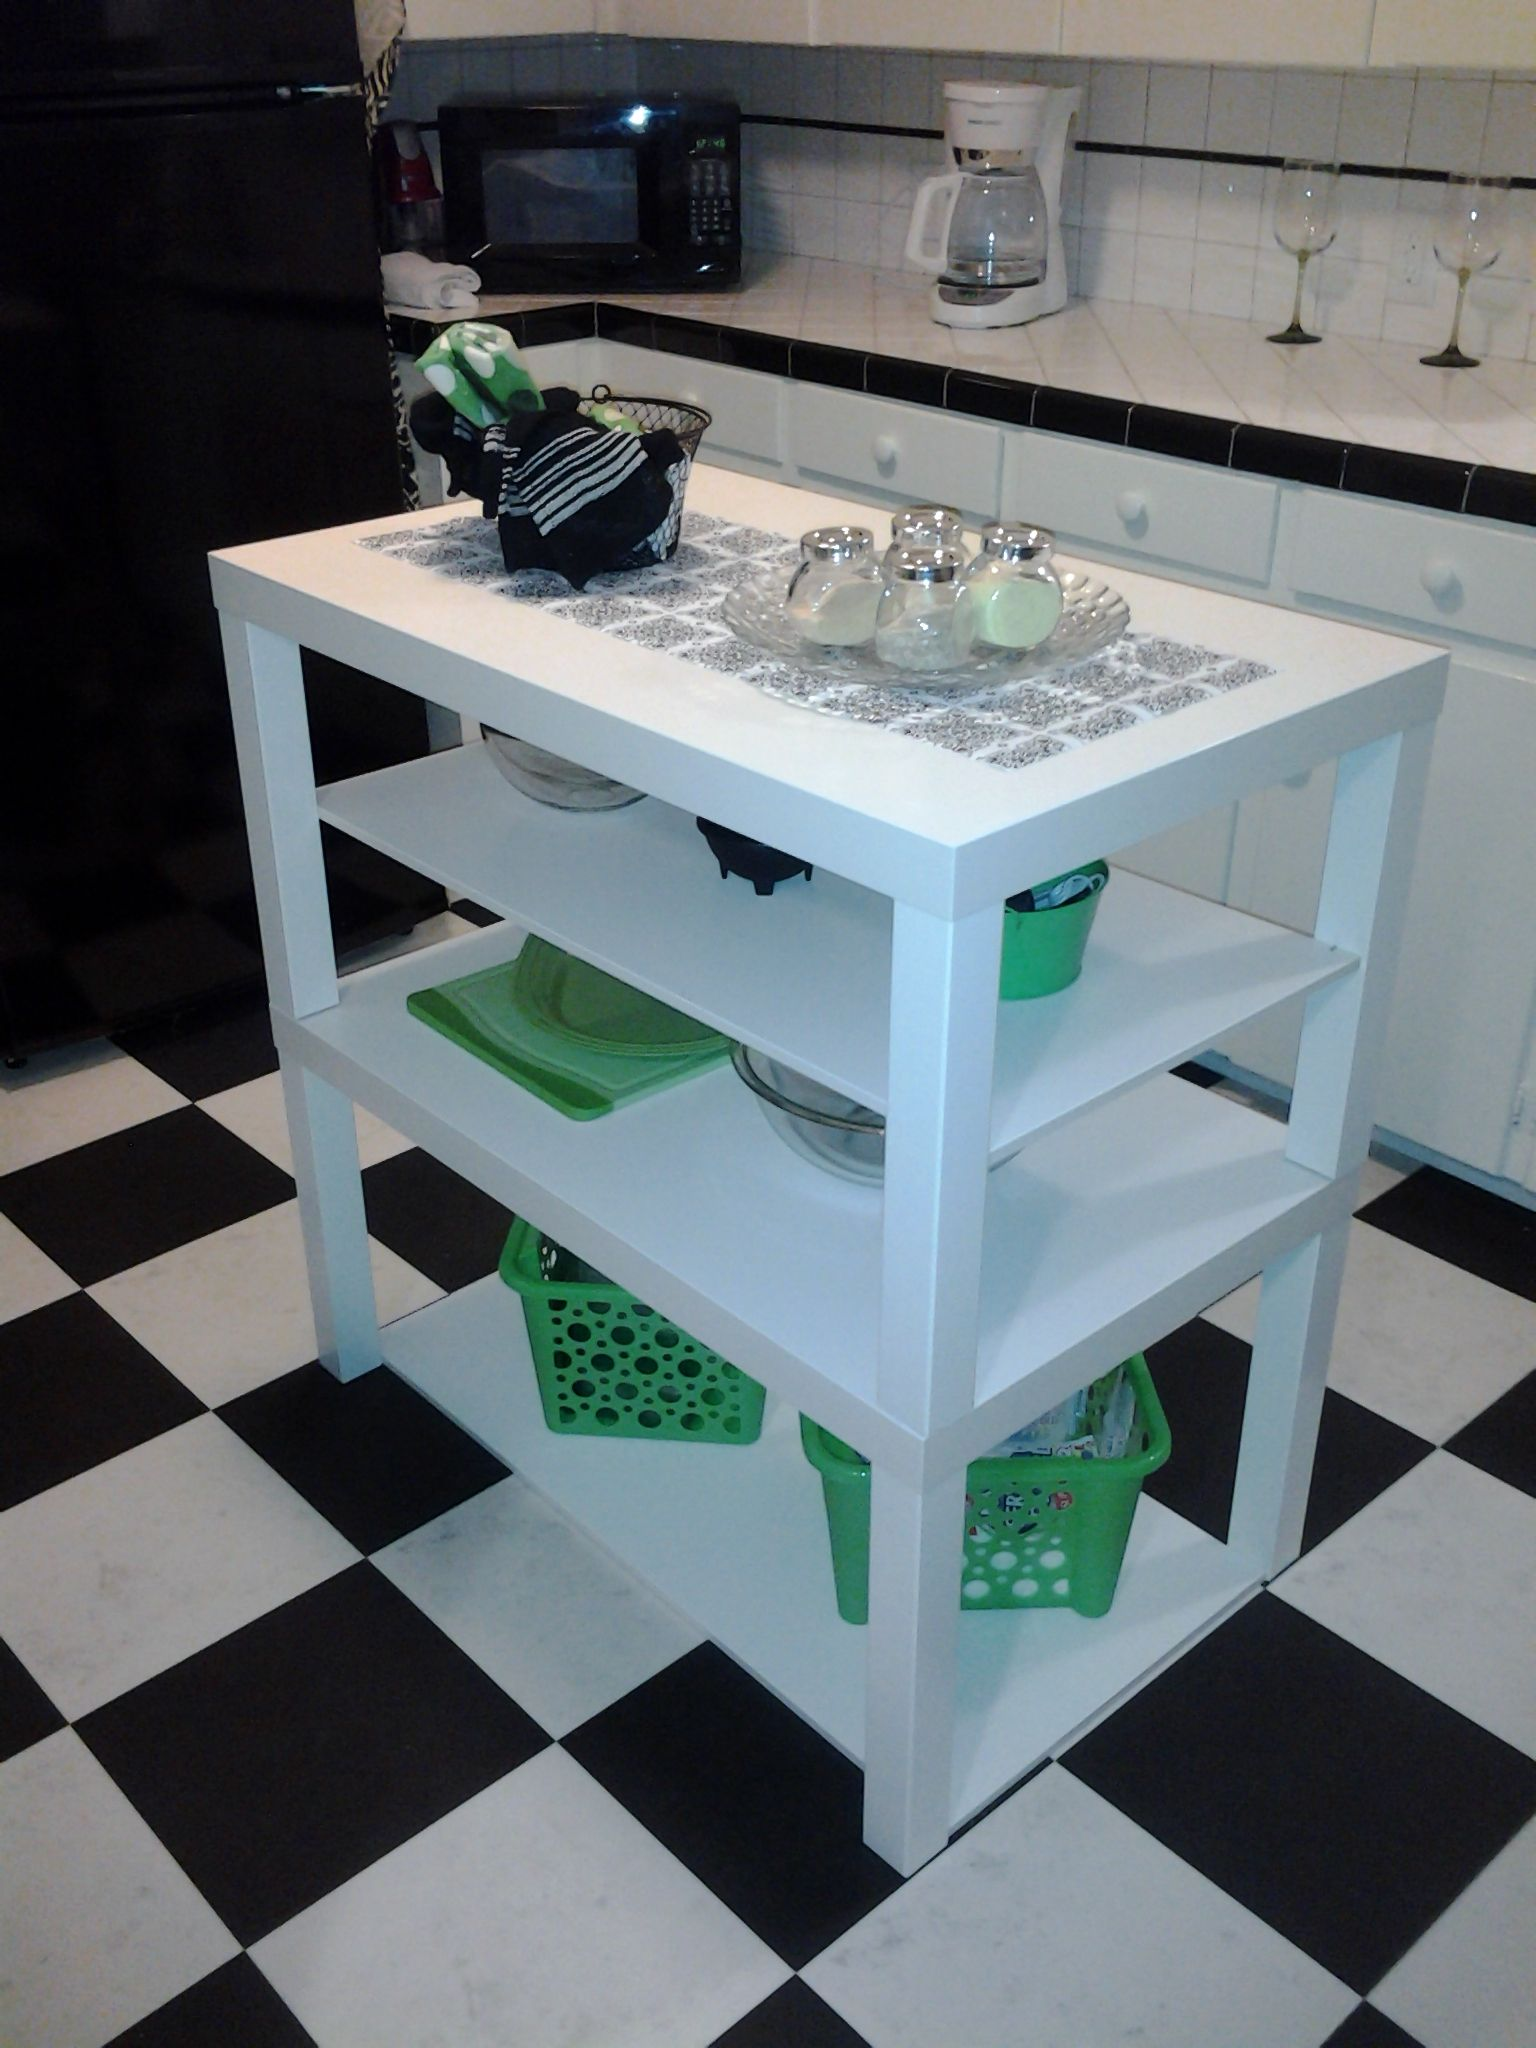 Ikea Hack - Ikea Lack Coffee tables turned cute little kitchen ...